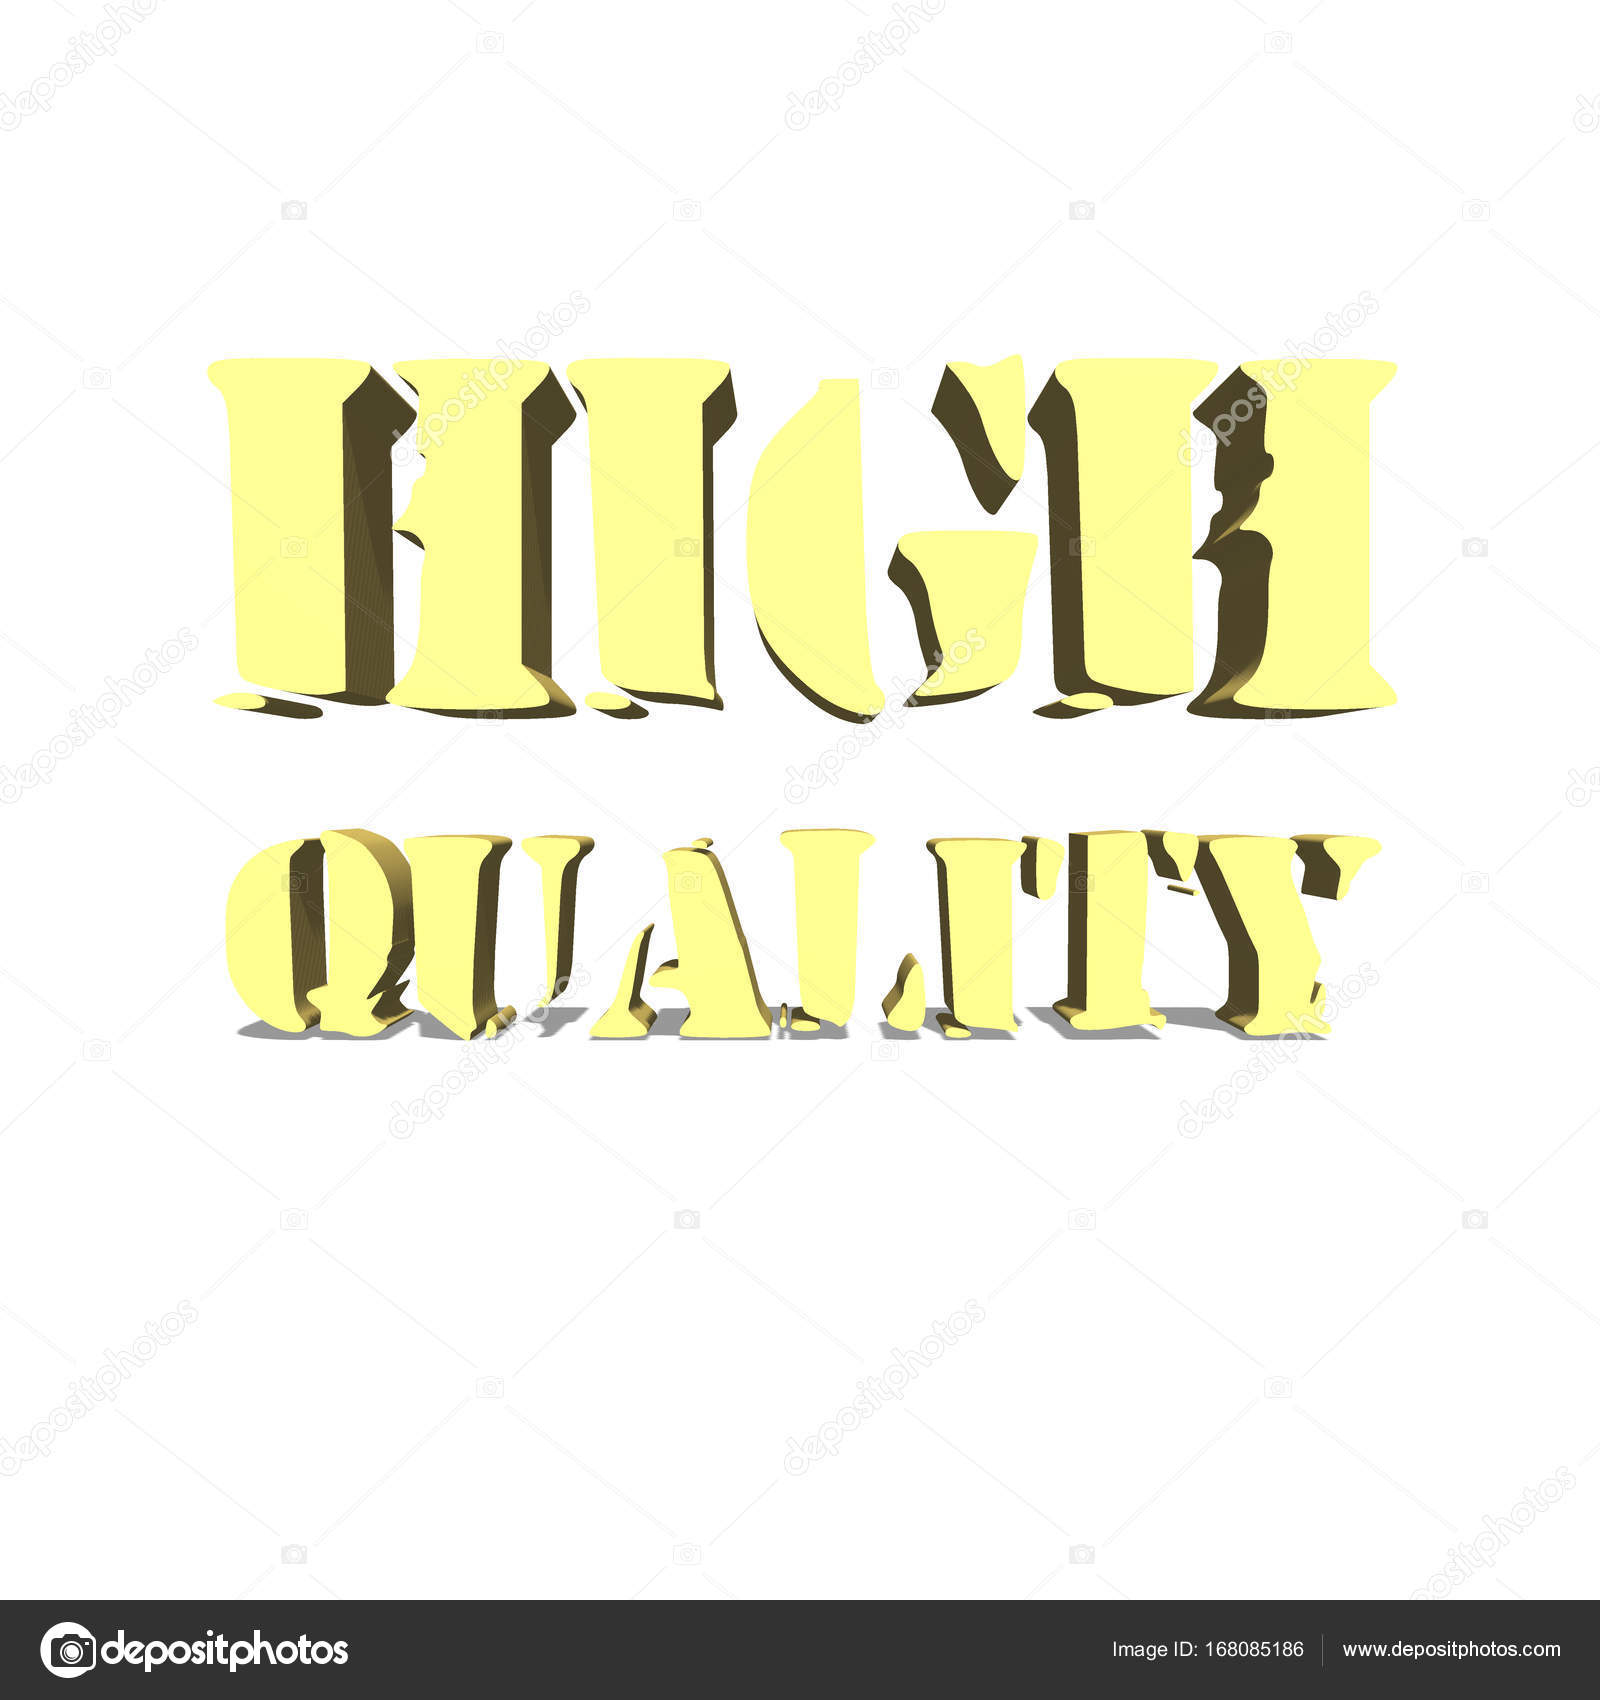 illustration stock guaranteed vector seal premium photo design image quality gold